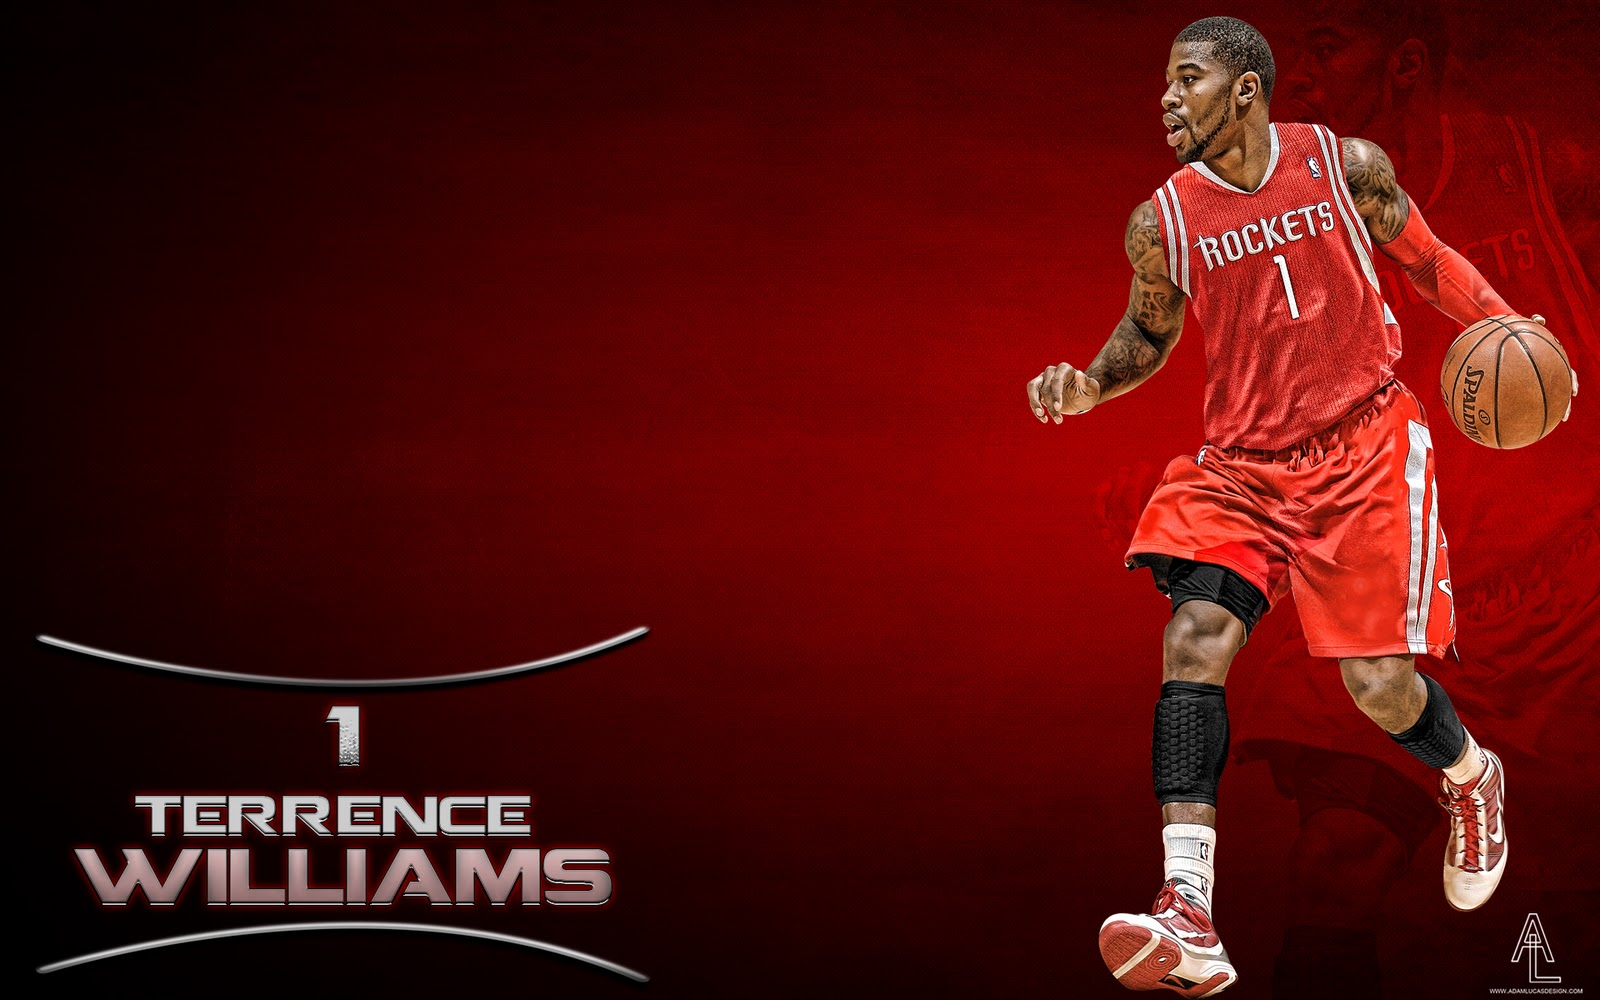 Terrence Williams NBA basketball wallpapers 1600x1000